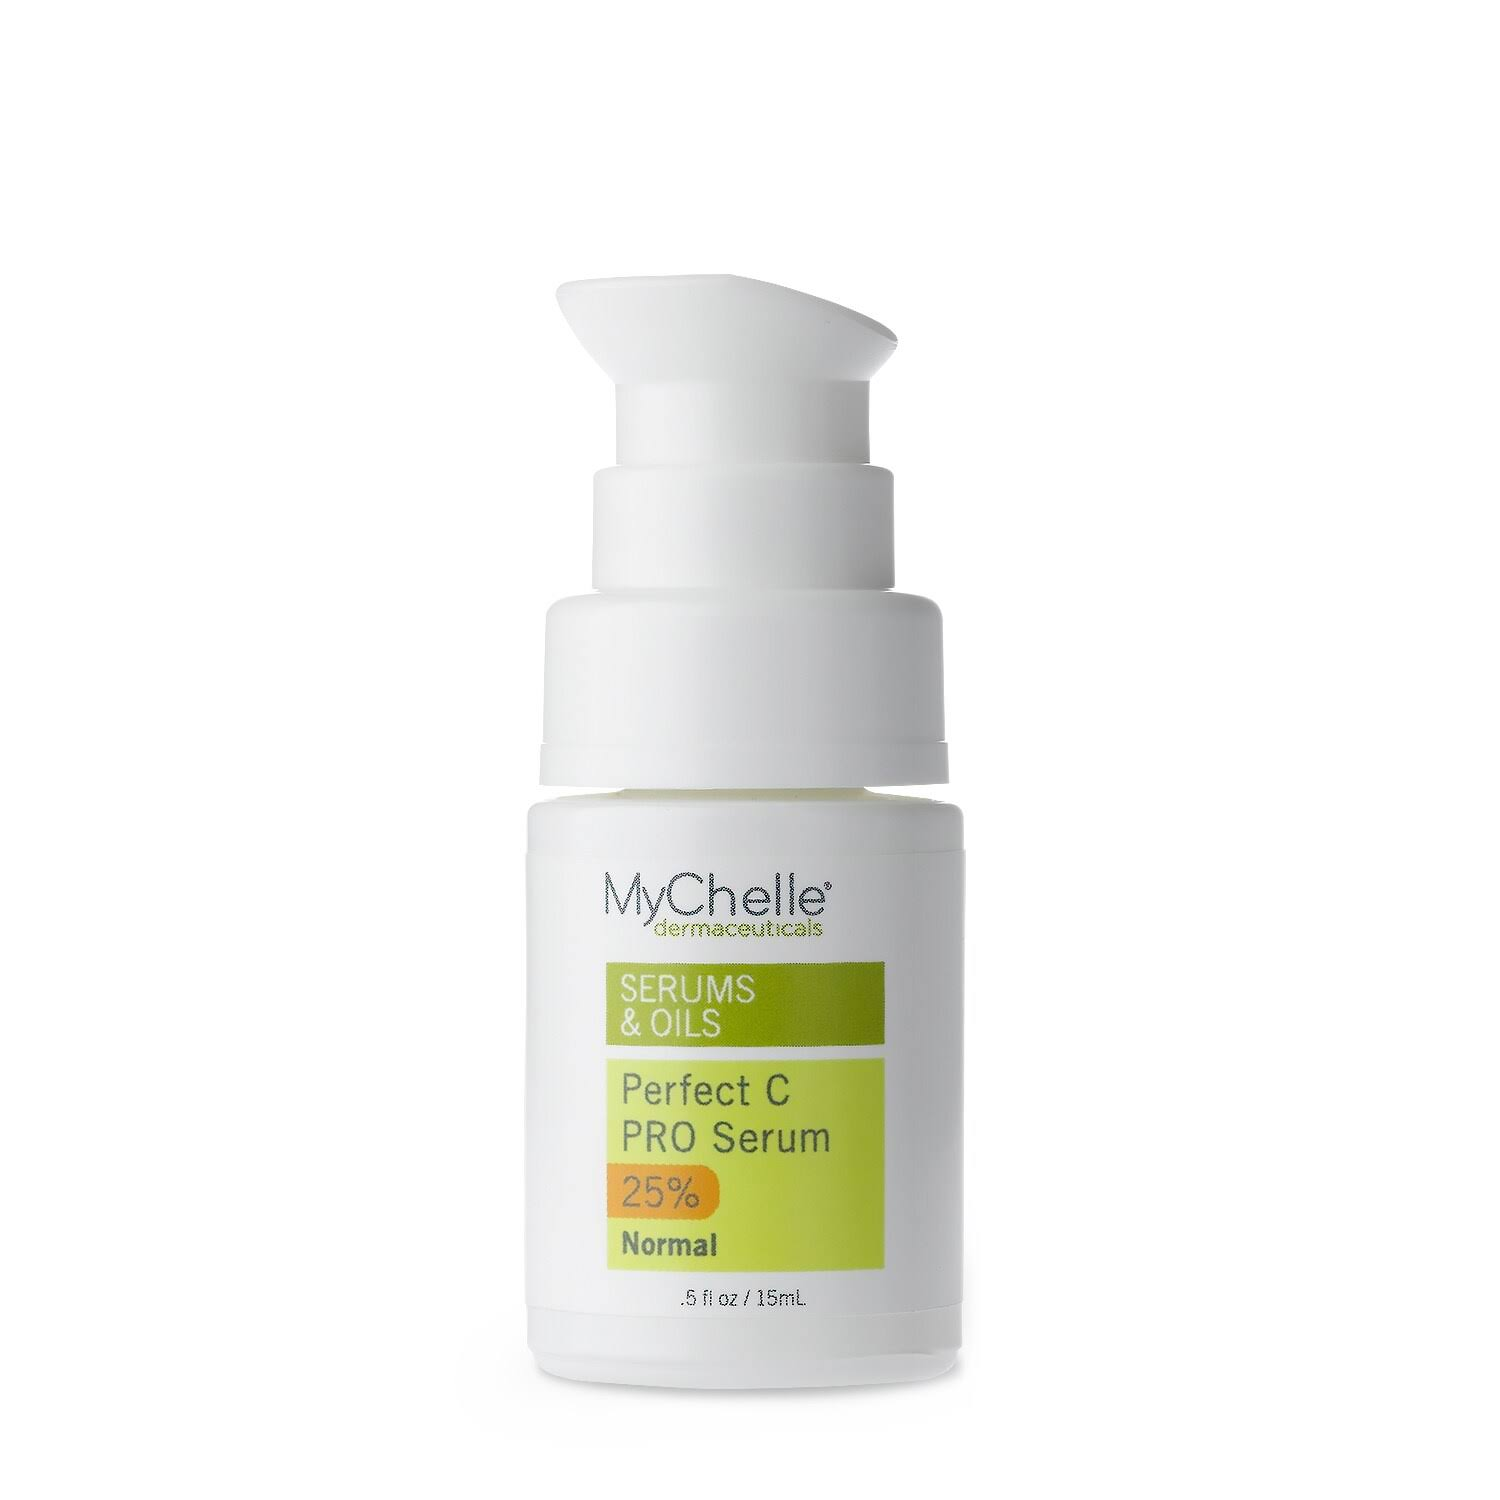 MyChelle Dermaceuticals - Perfect C Pro Serum 25% 0.5 fl oz